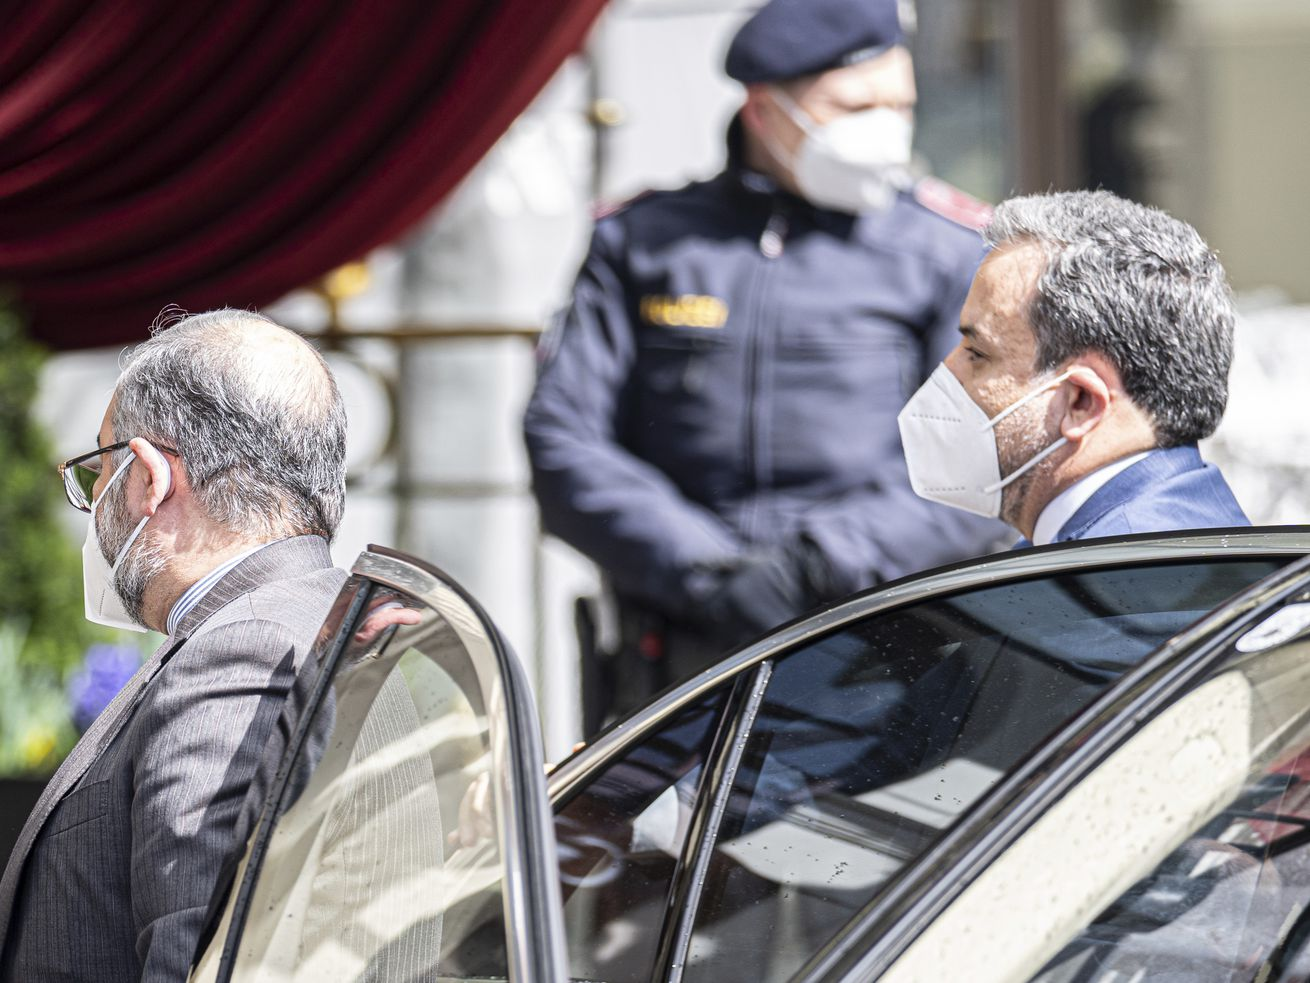 Political deputy at the Ministry of Foreign Affairs of Iran, Abbas Araghchi, right, arrives at the Grand Hotel Wien where closed-door nuclear talks with Iran take place in Vienna, Austria, Tuesday, April 6, 2021.